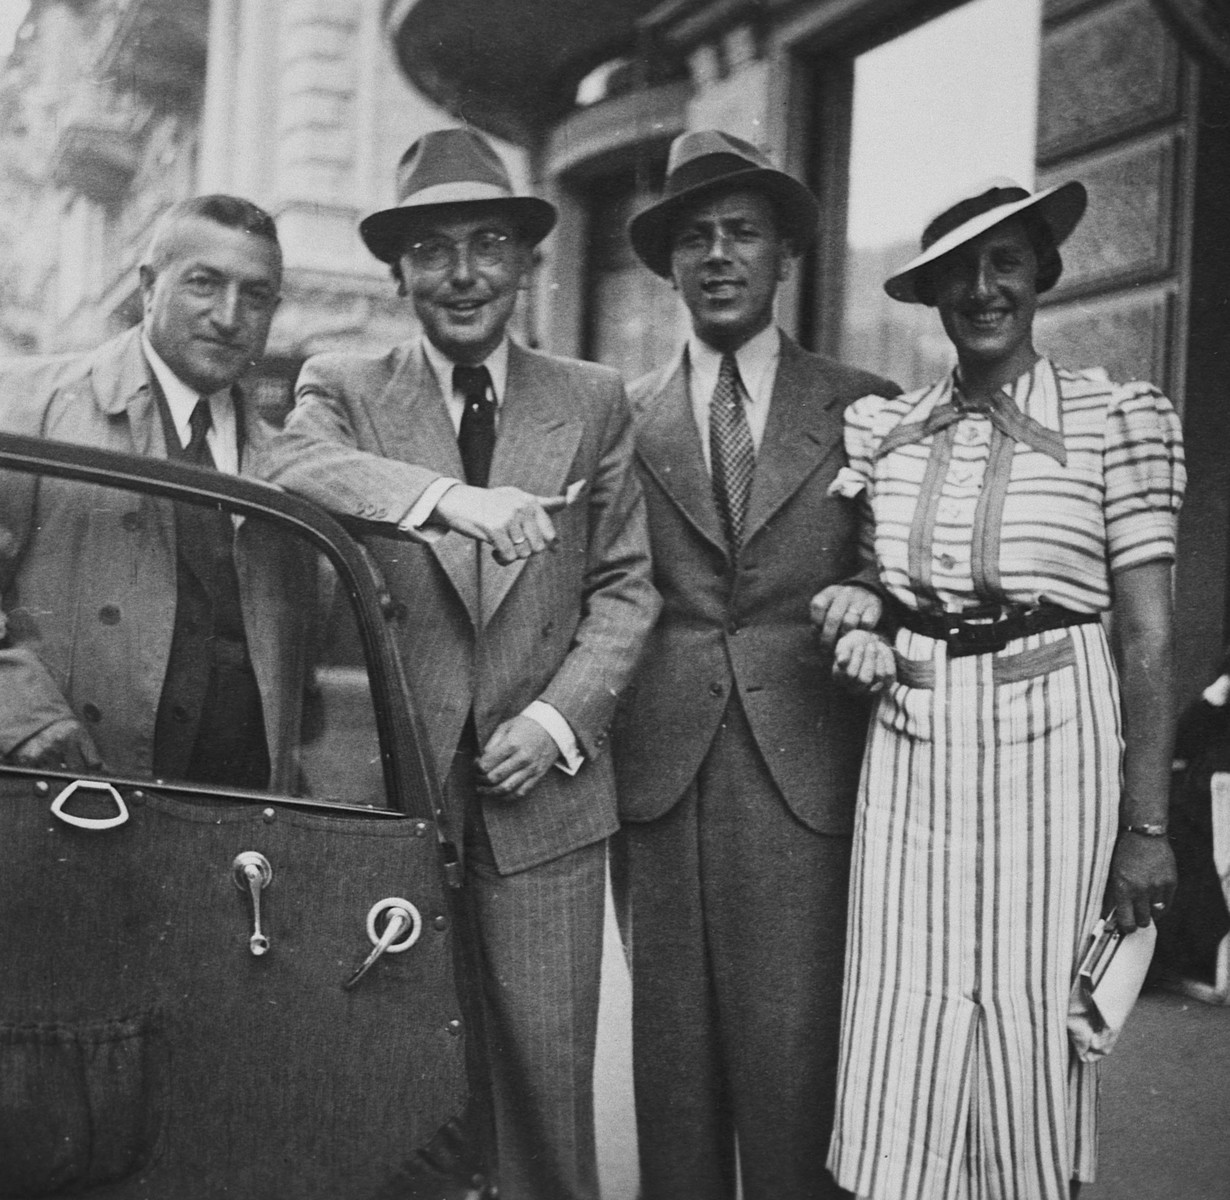 Four friends pose next to an automobile.    Among those pictured are Alfred and Lill Rahn (third and fourth from the left).